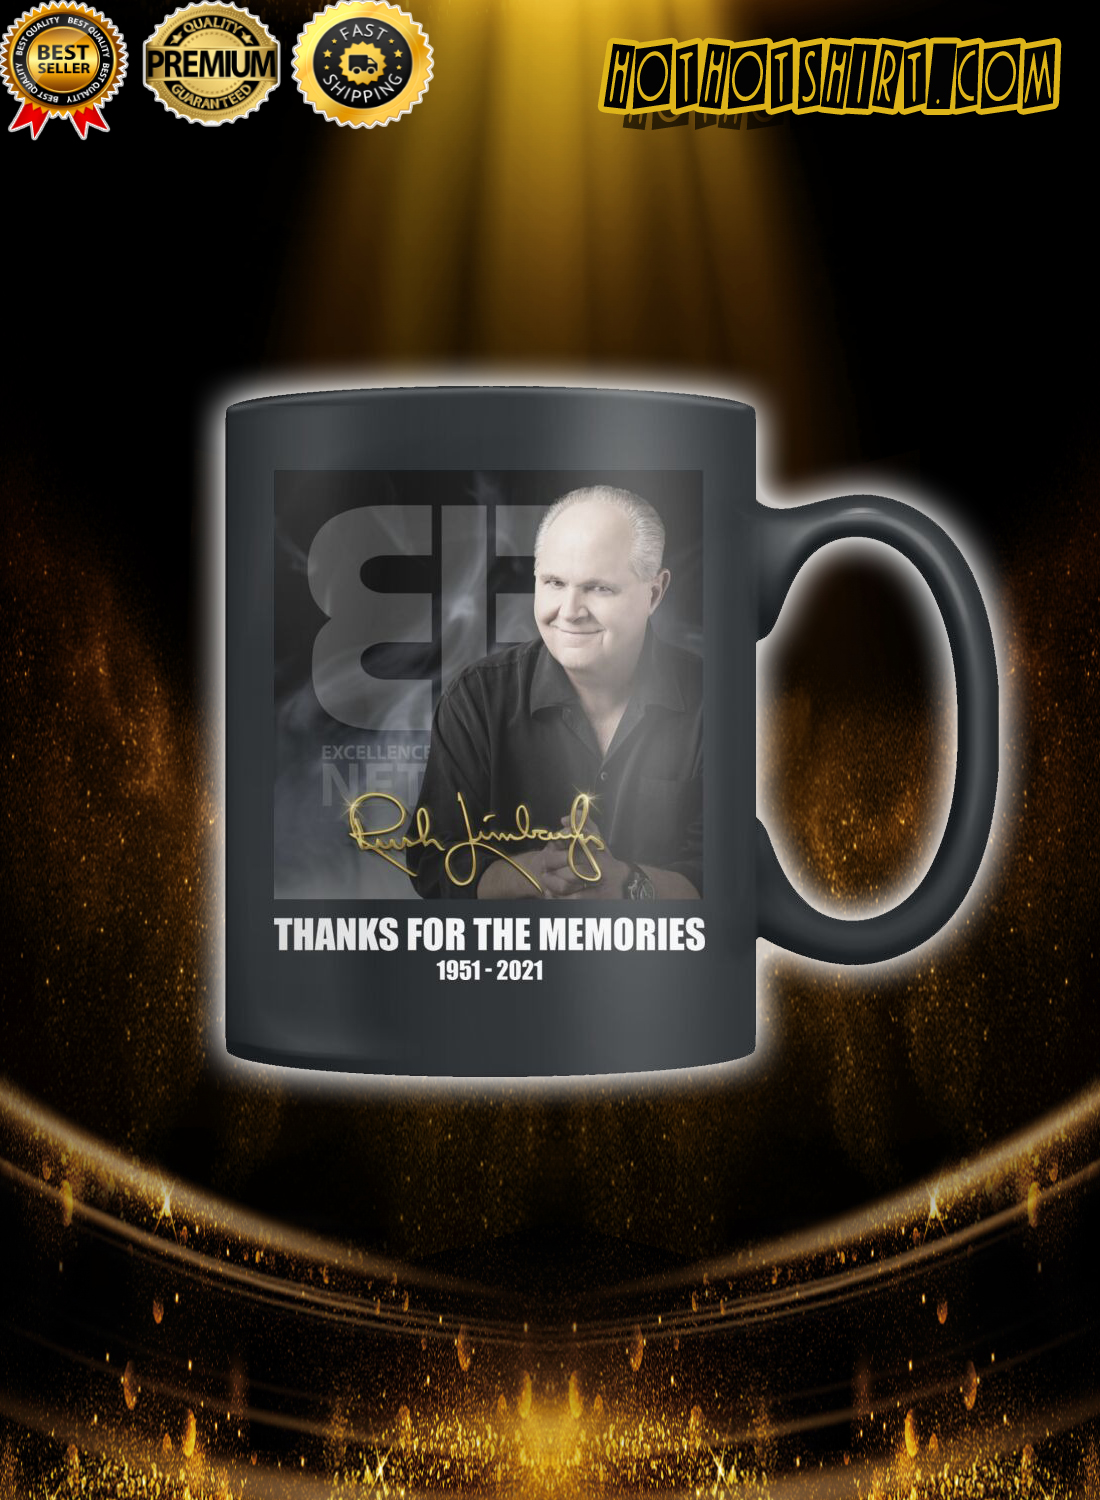 Rush Limbaugh Thanks for the memories Mug 1